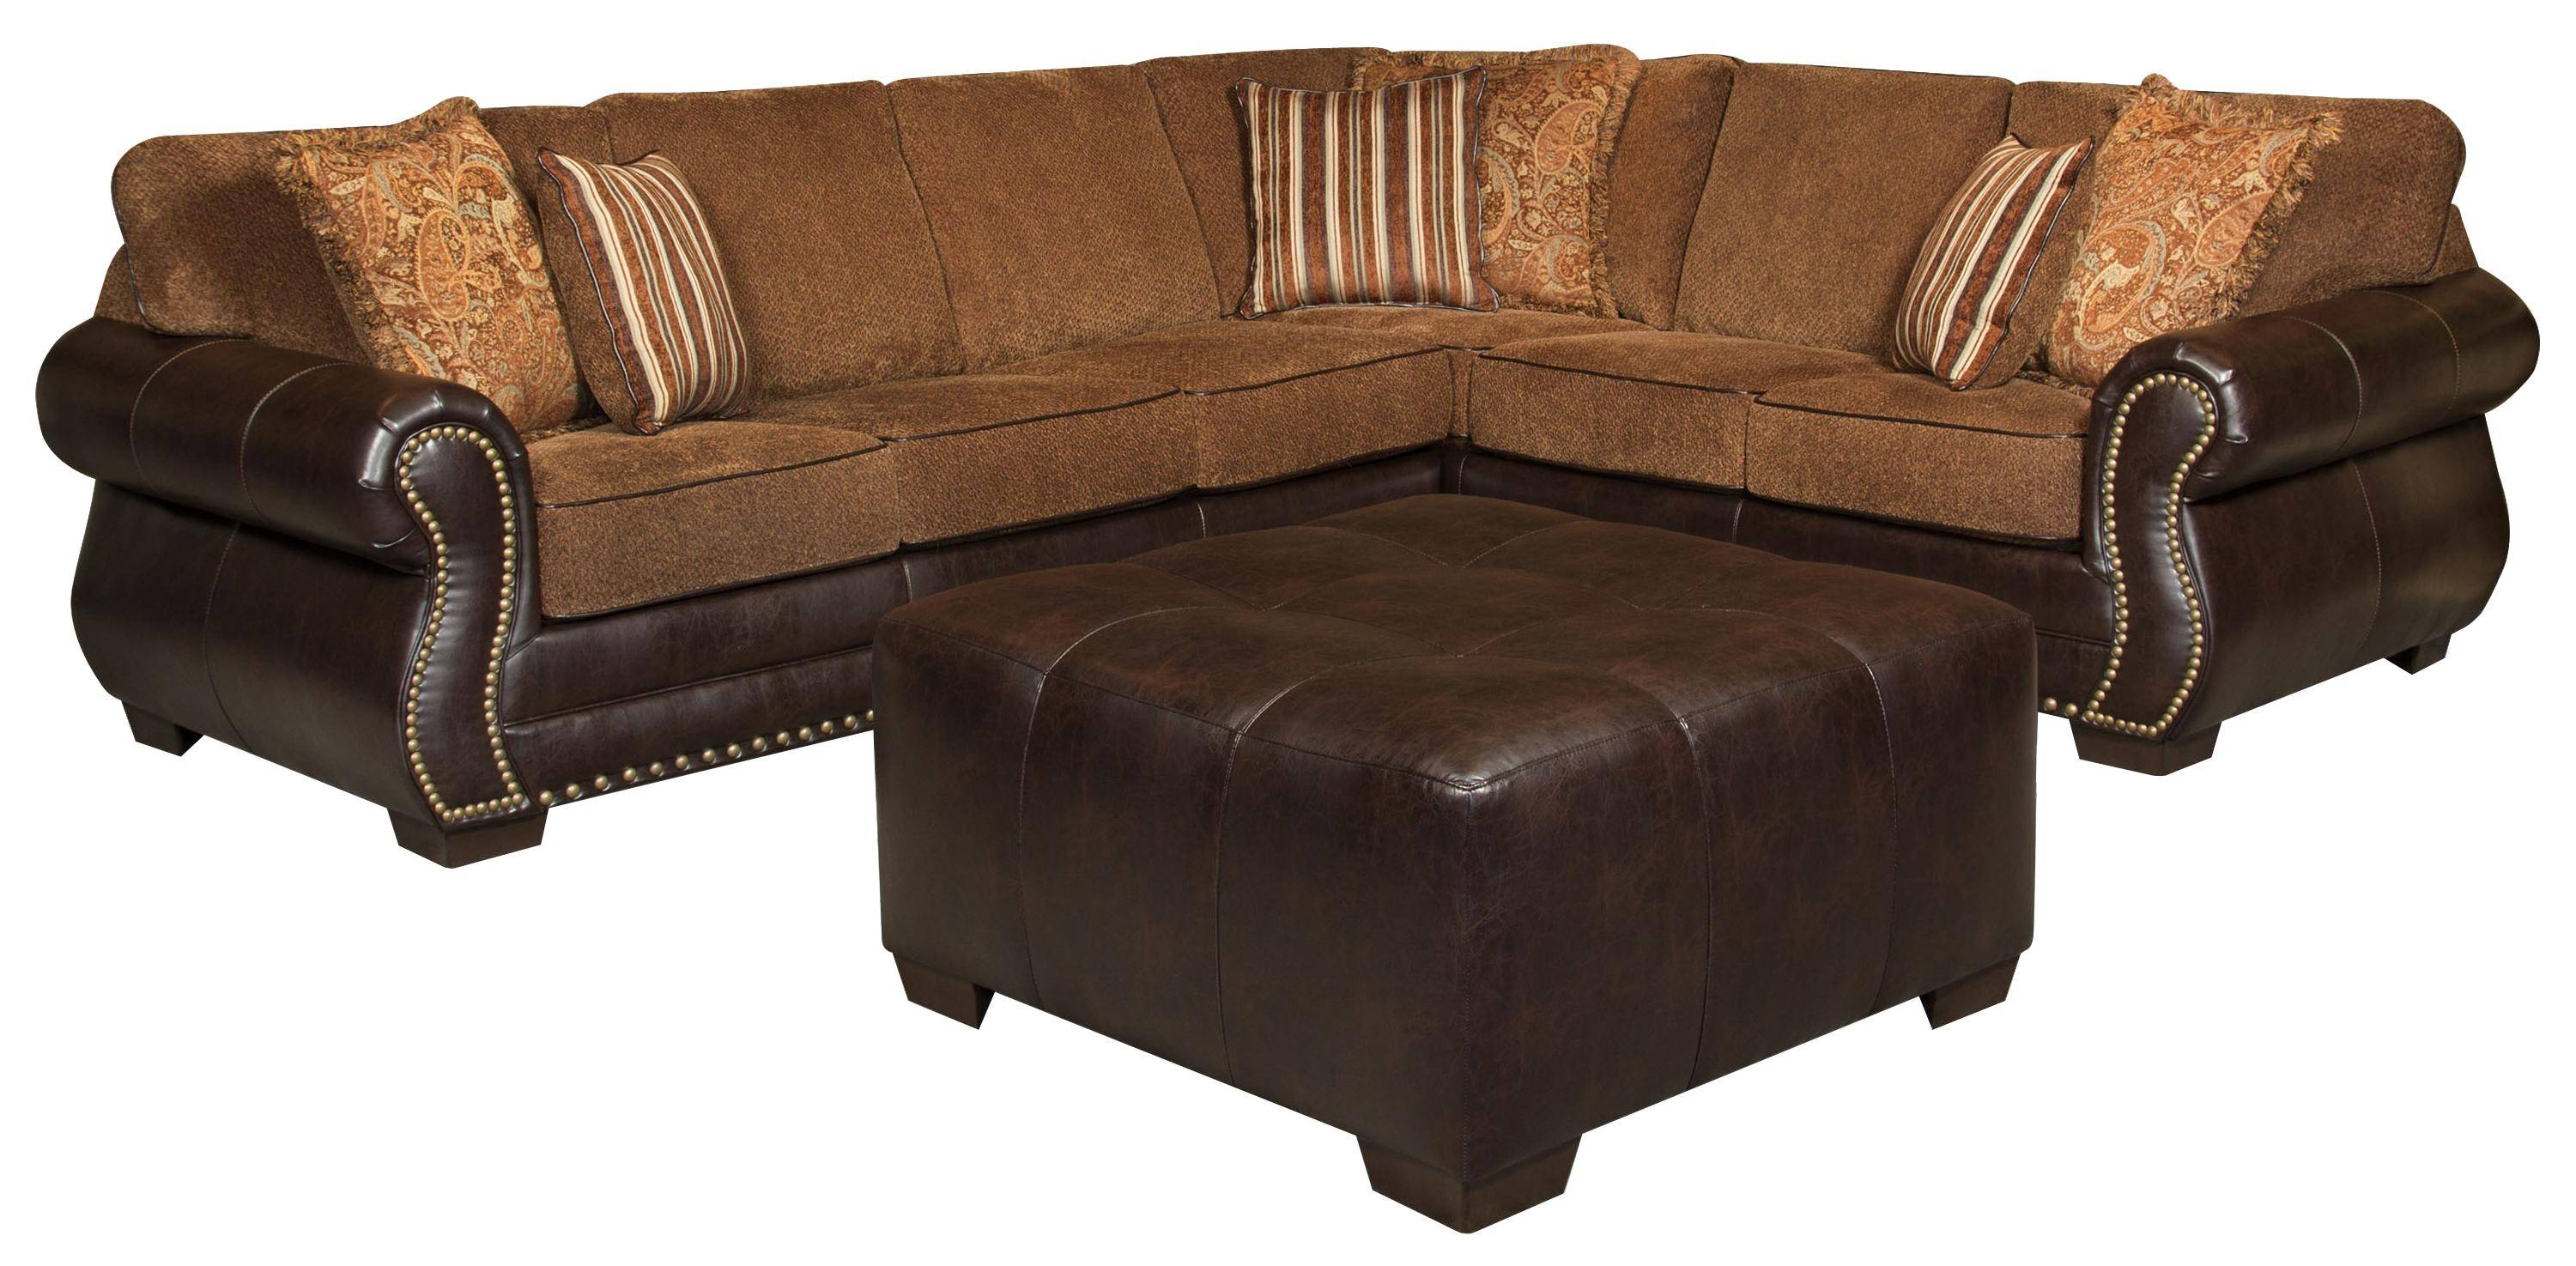 Corinthian Sectional Sofa Sets: 12 Outstanding Corinthian with regard to Corinthian Sectional Sofas (Image 16 of 30)